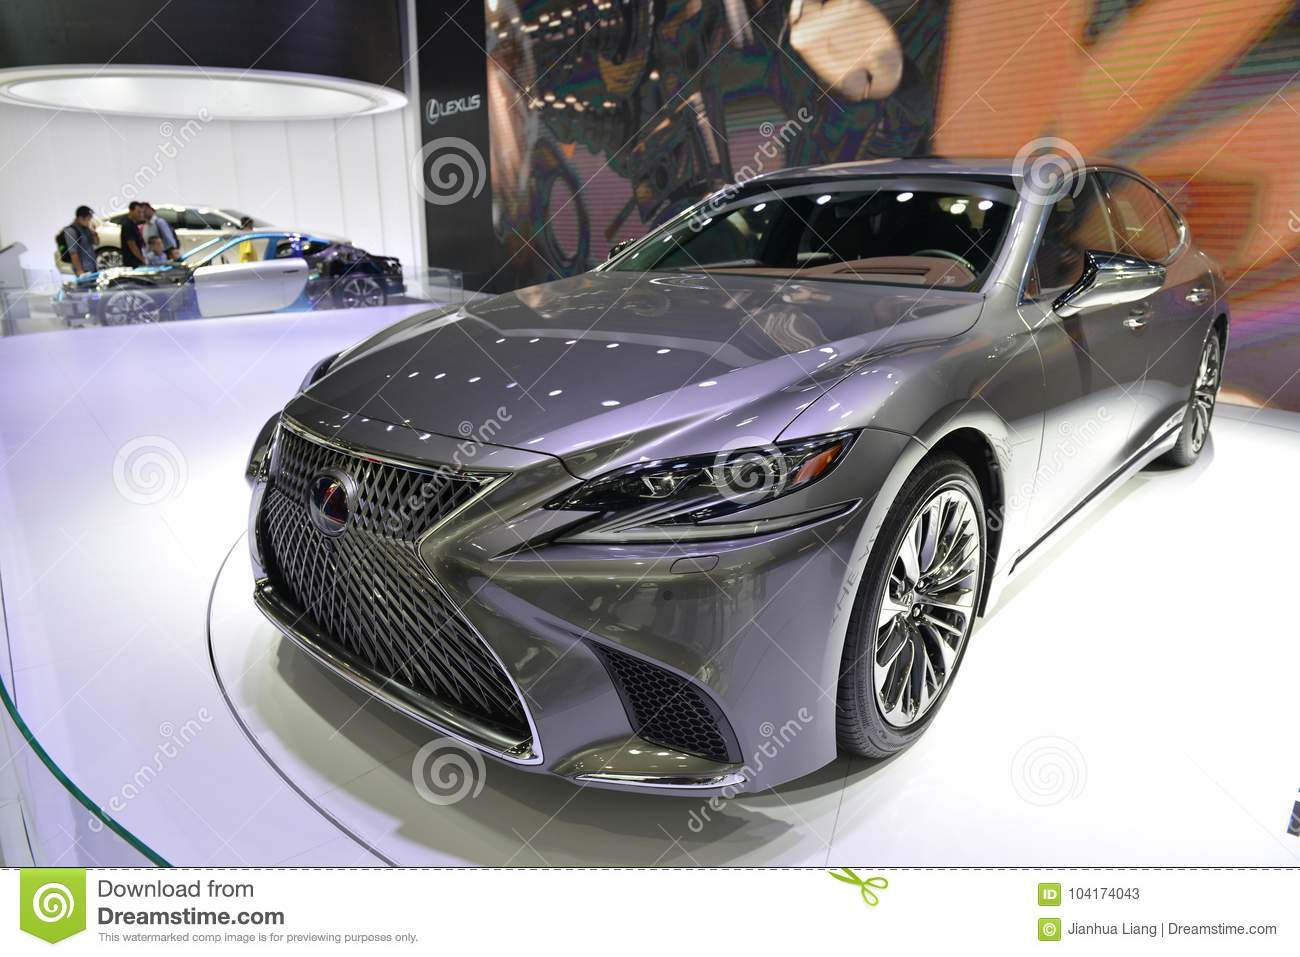 Lexus All New Ls500h Saloon Car Editorial Stock Photo Image Of